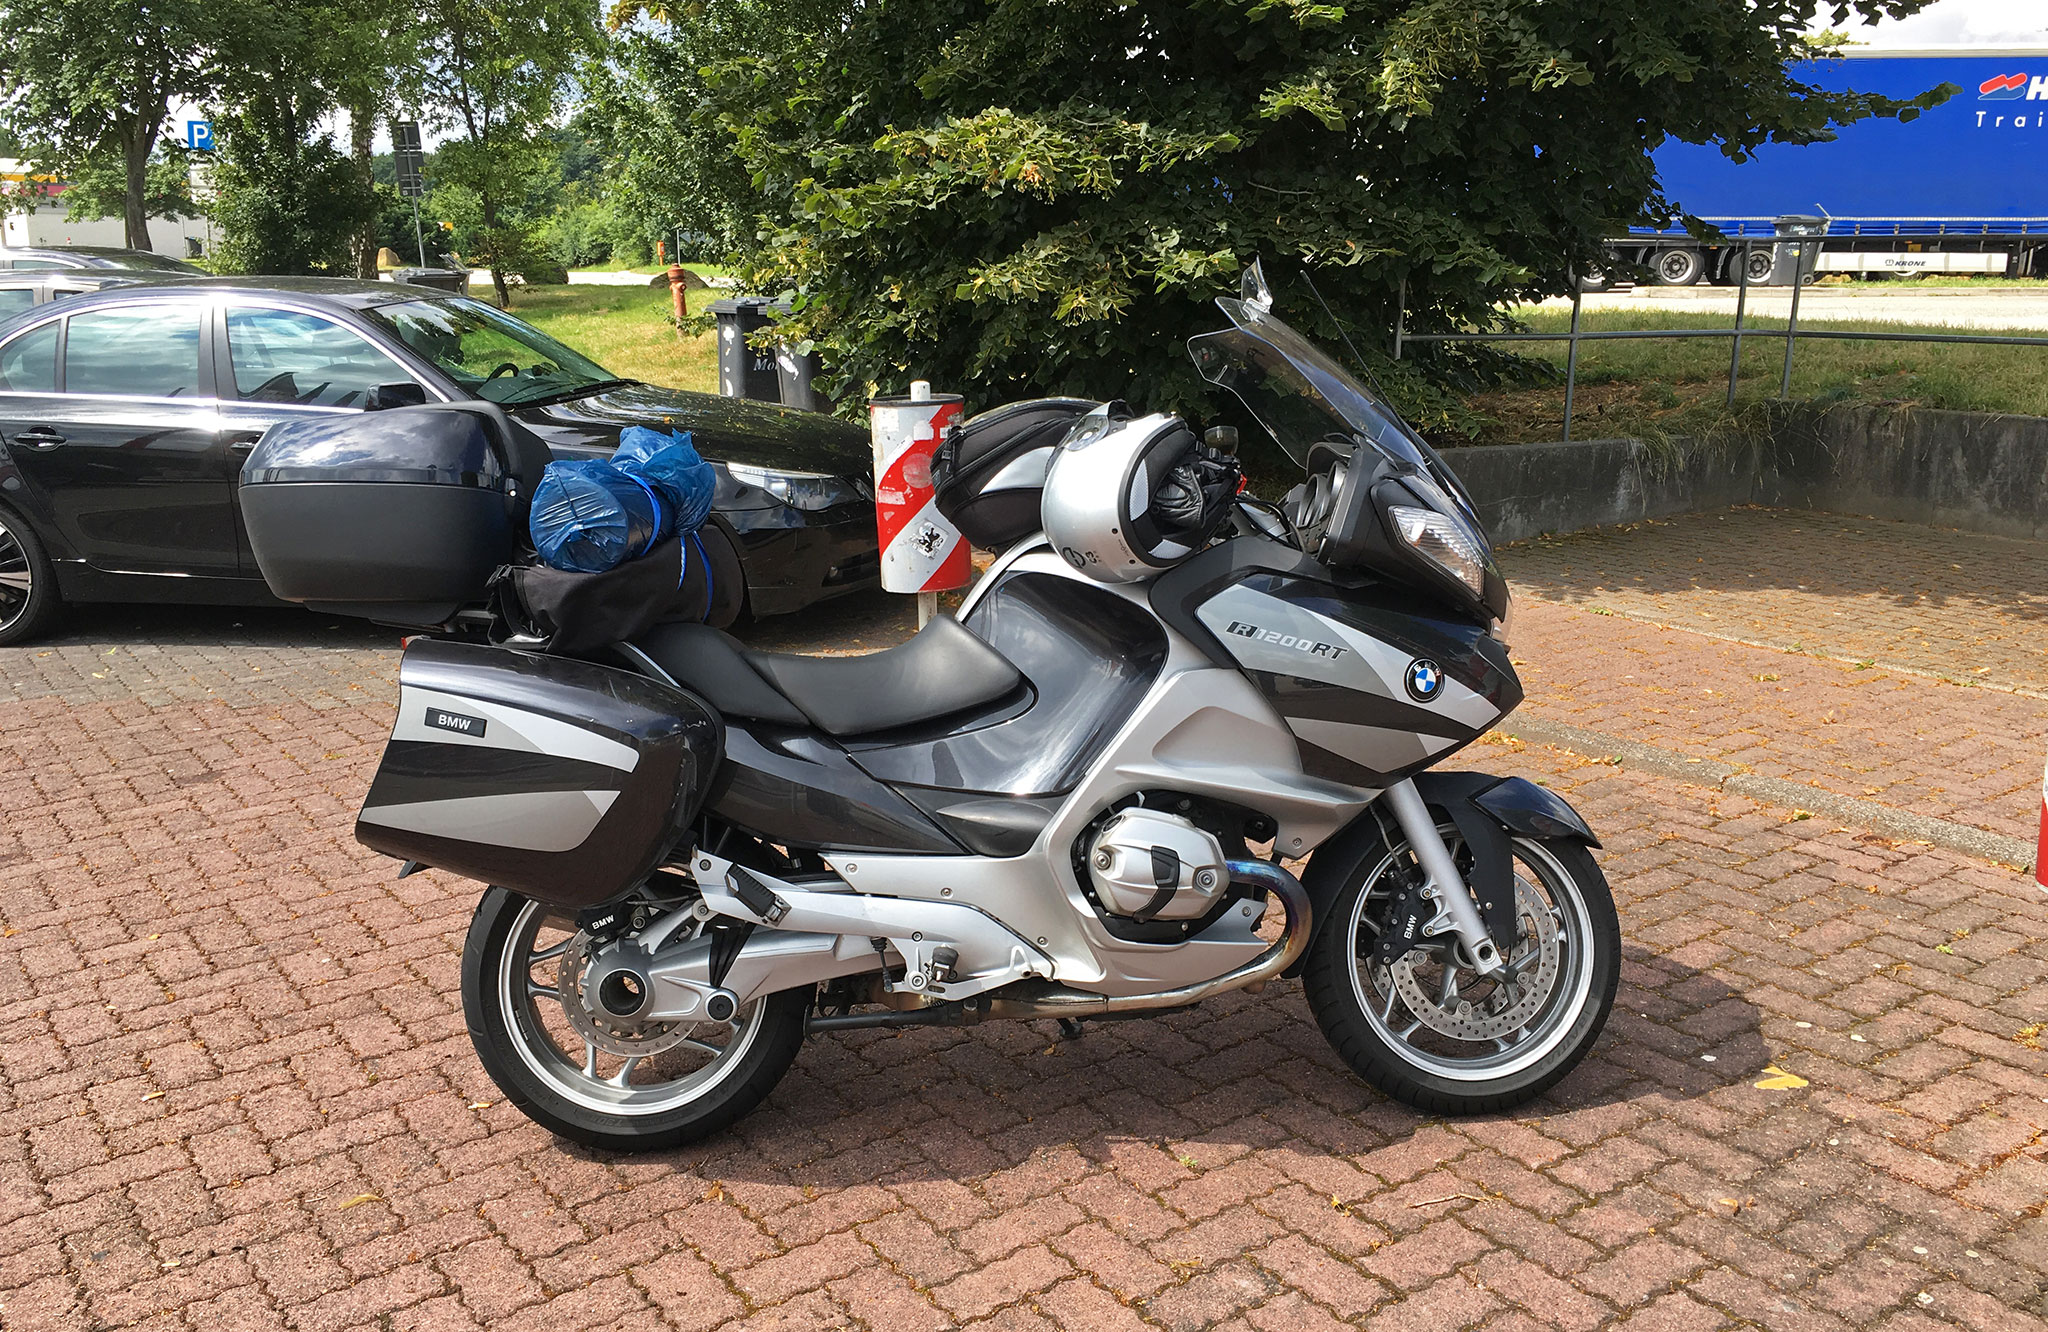 BMW R1200RT along the Autobahn in Germany